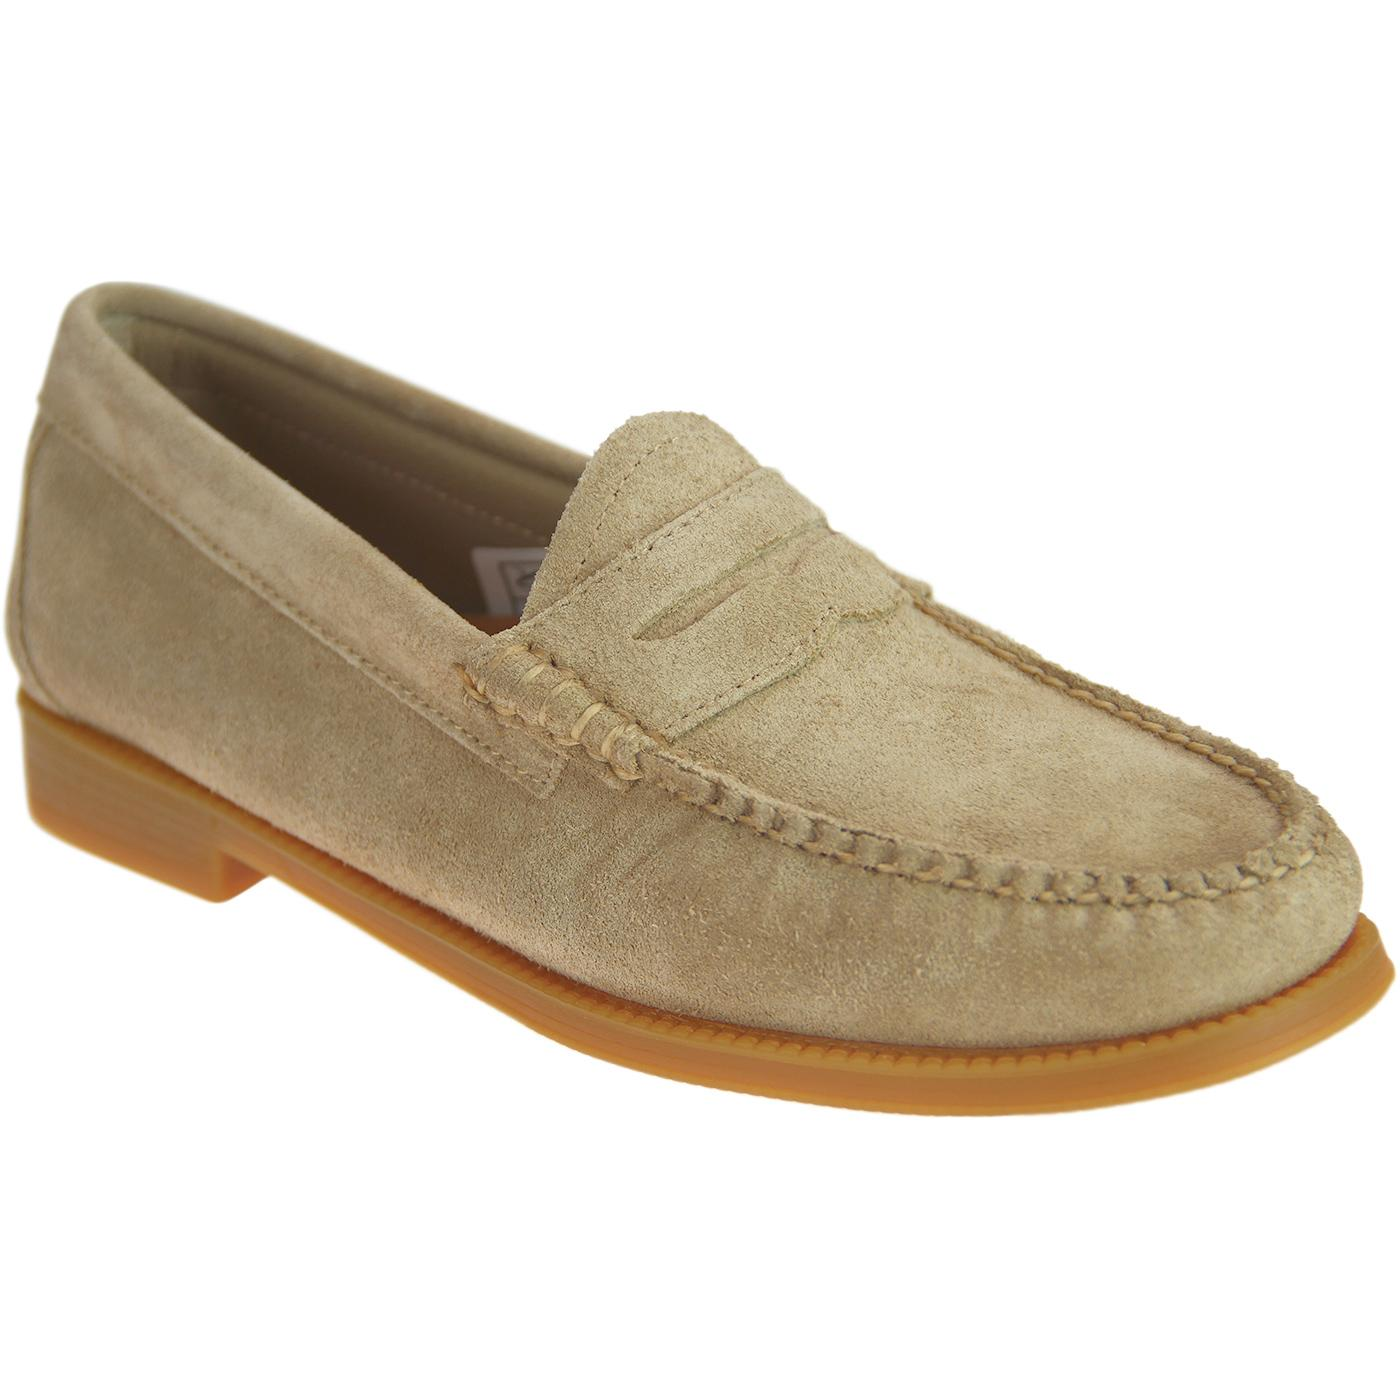 BASS WEEJUNS Women's Retro Suede Penny loafers